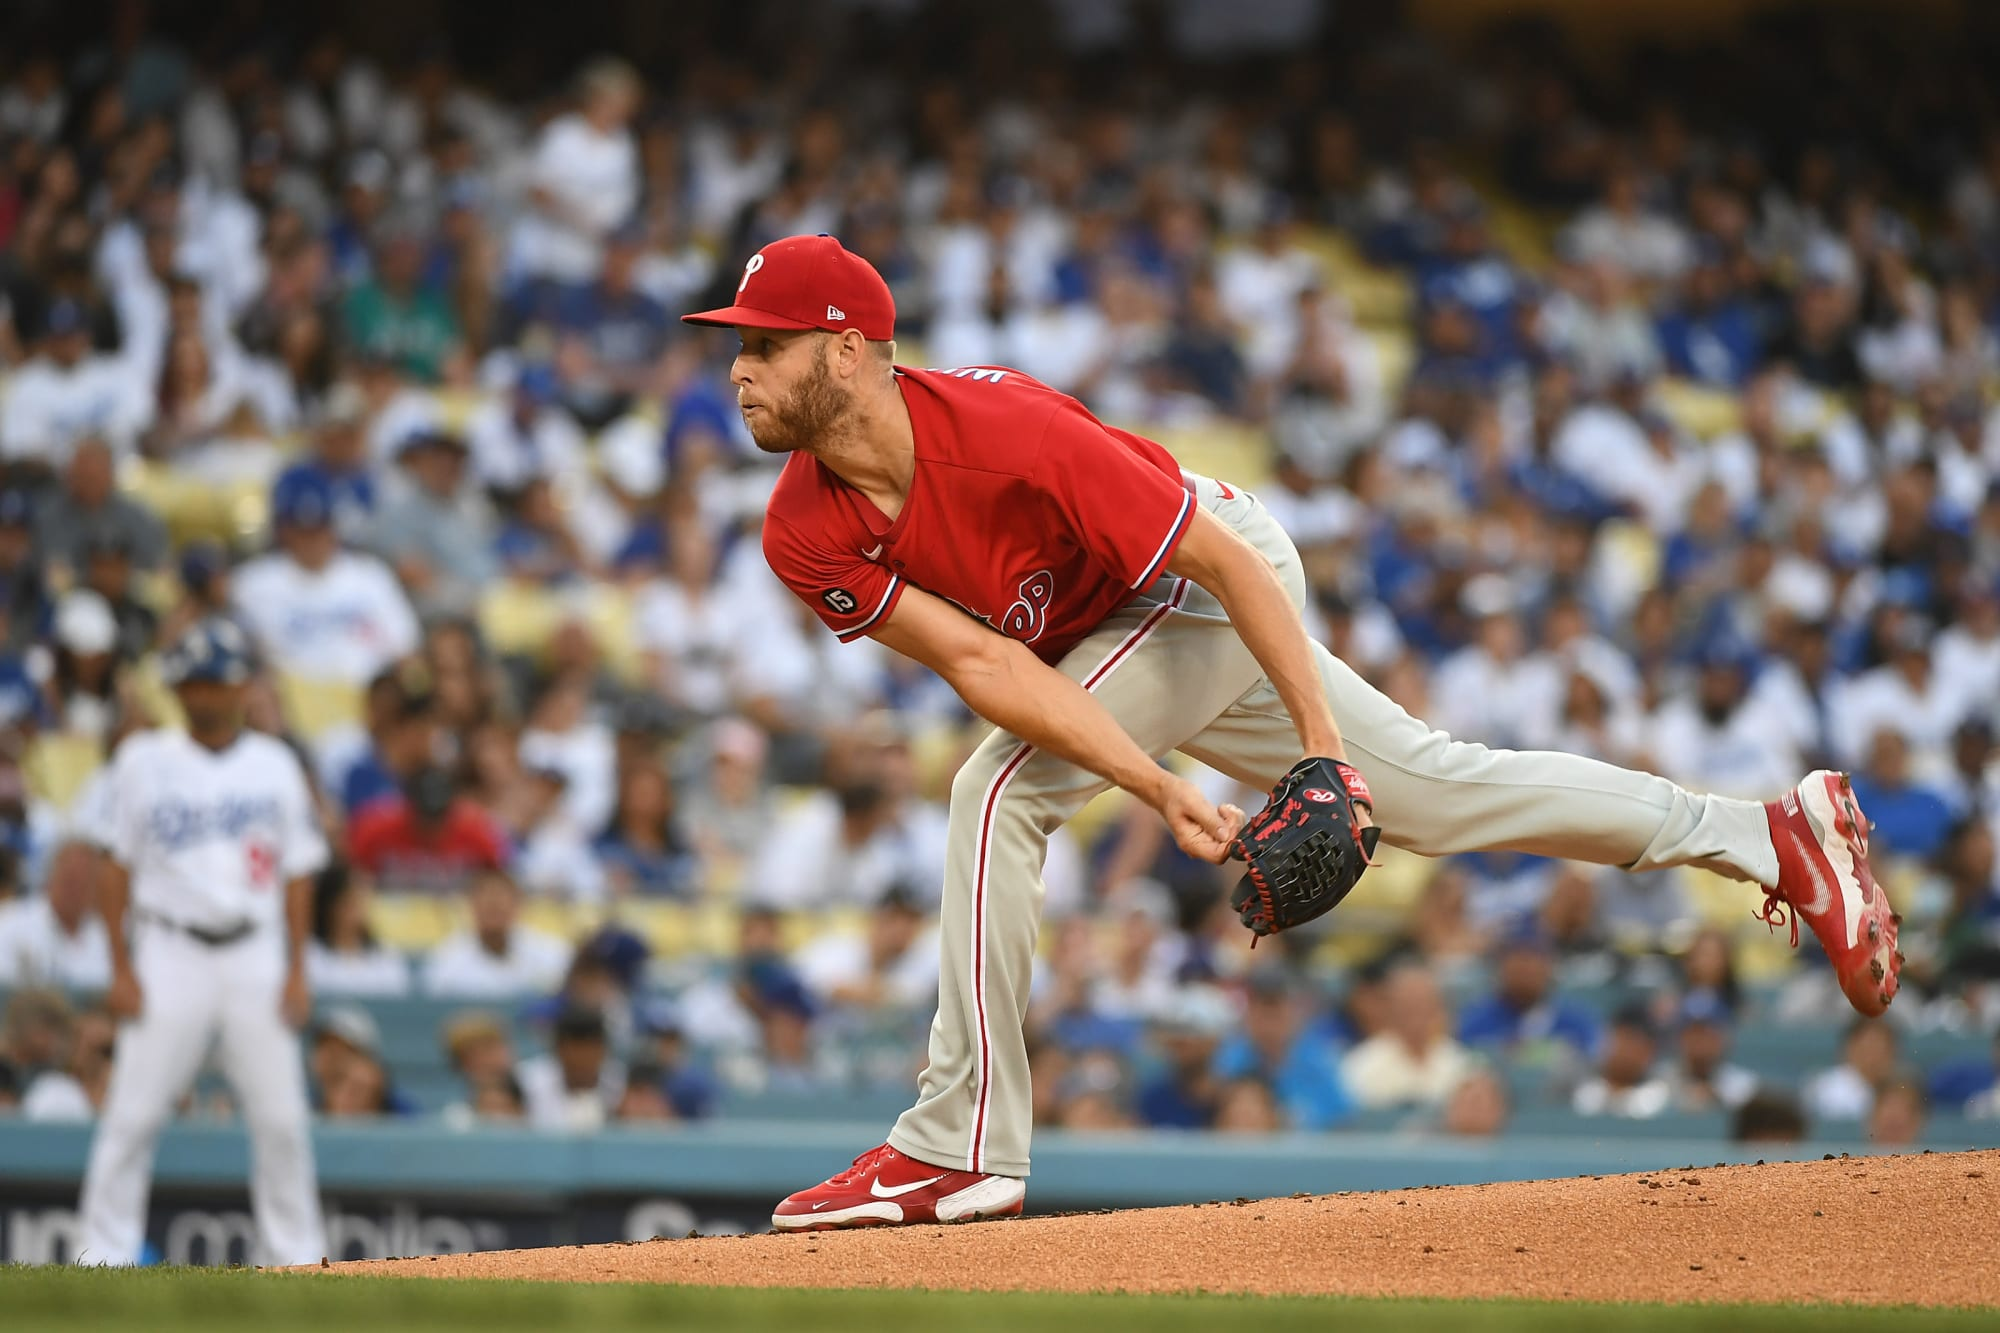 Phillies Game Today: Phillies vs Braves Odds, Starting Lineup, Pitching Matchup, Predictions, Schedule, Live Stream and TV Channel